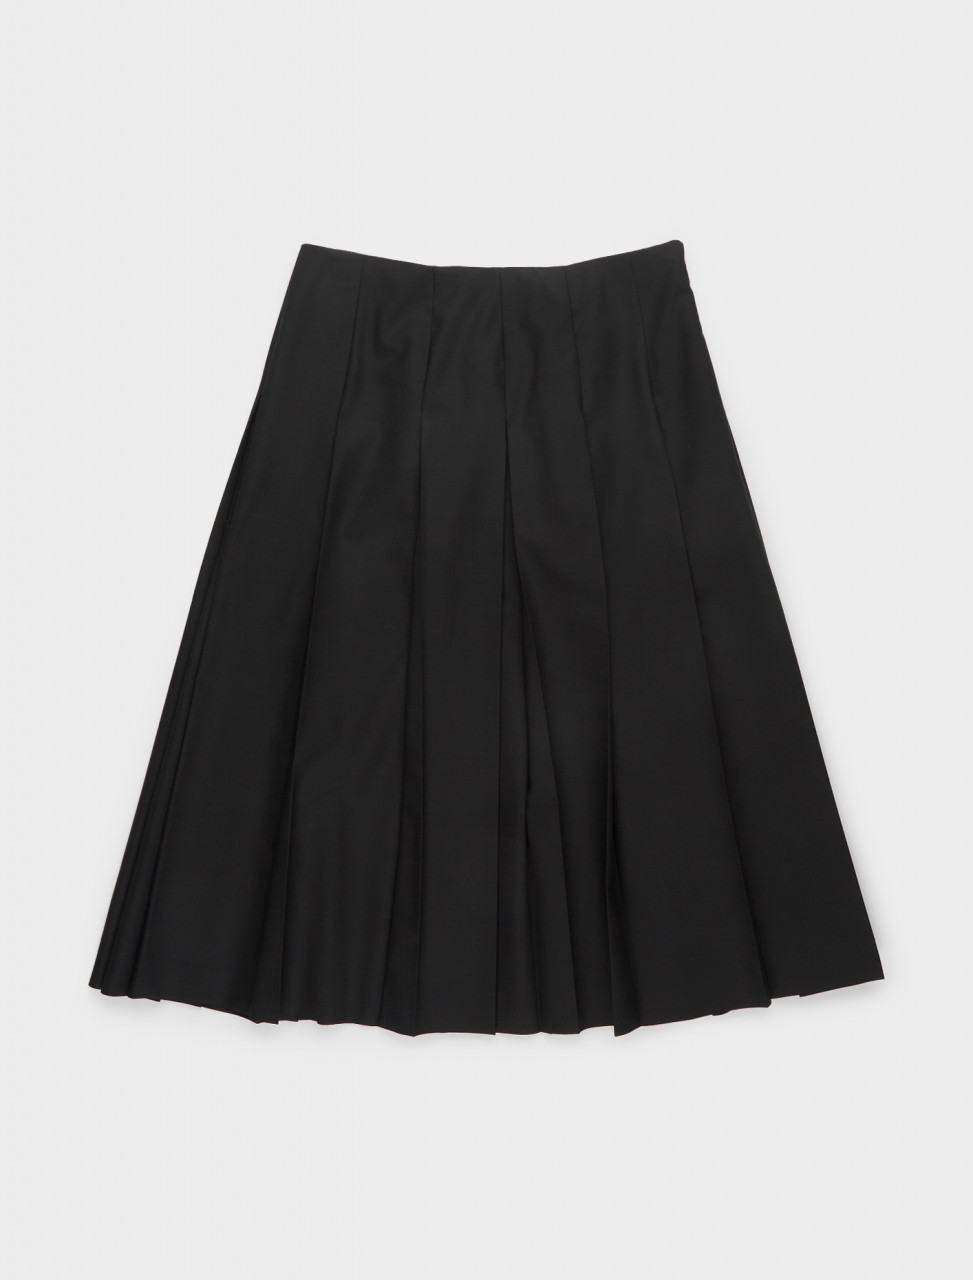 130-JSER350400-WR450202-401 JIL SANDER Essential Skirt in Dark Blue